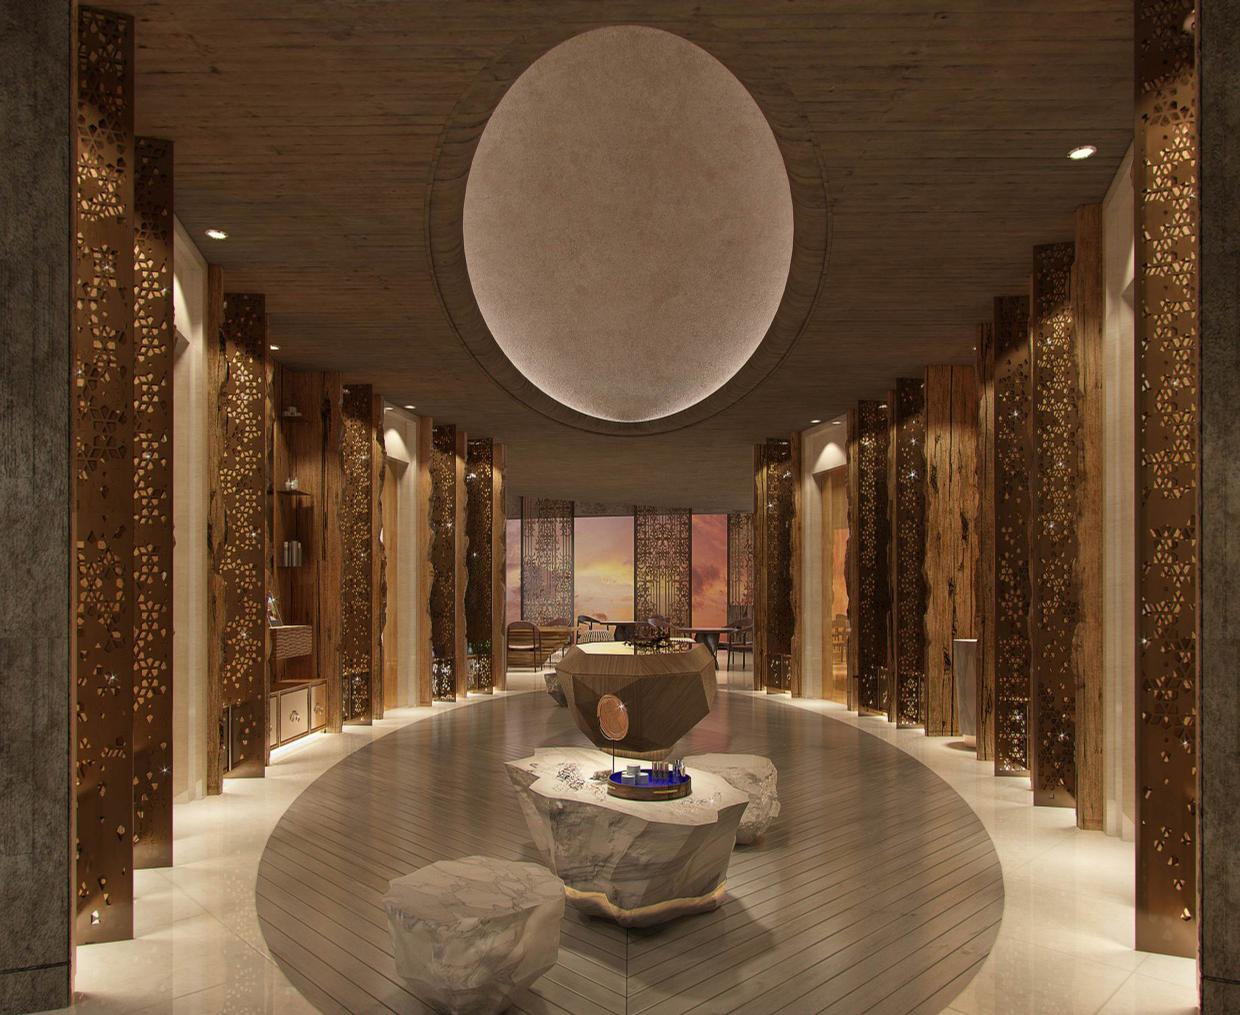 The 1,522sq m Six Senses Spa Mumbai focuses on functional fitness, recovery and wellness